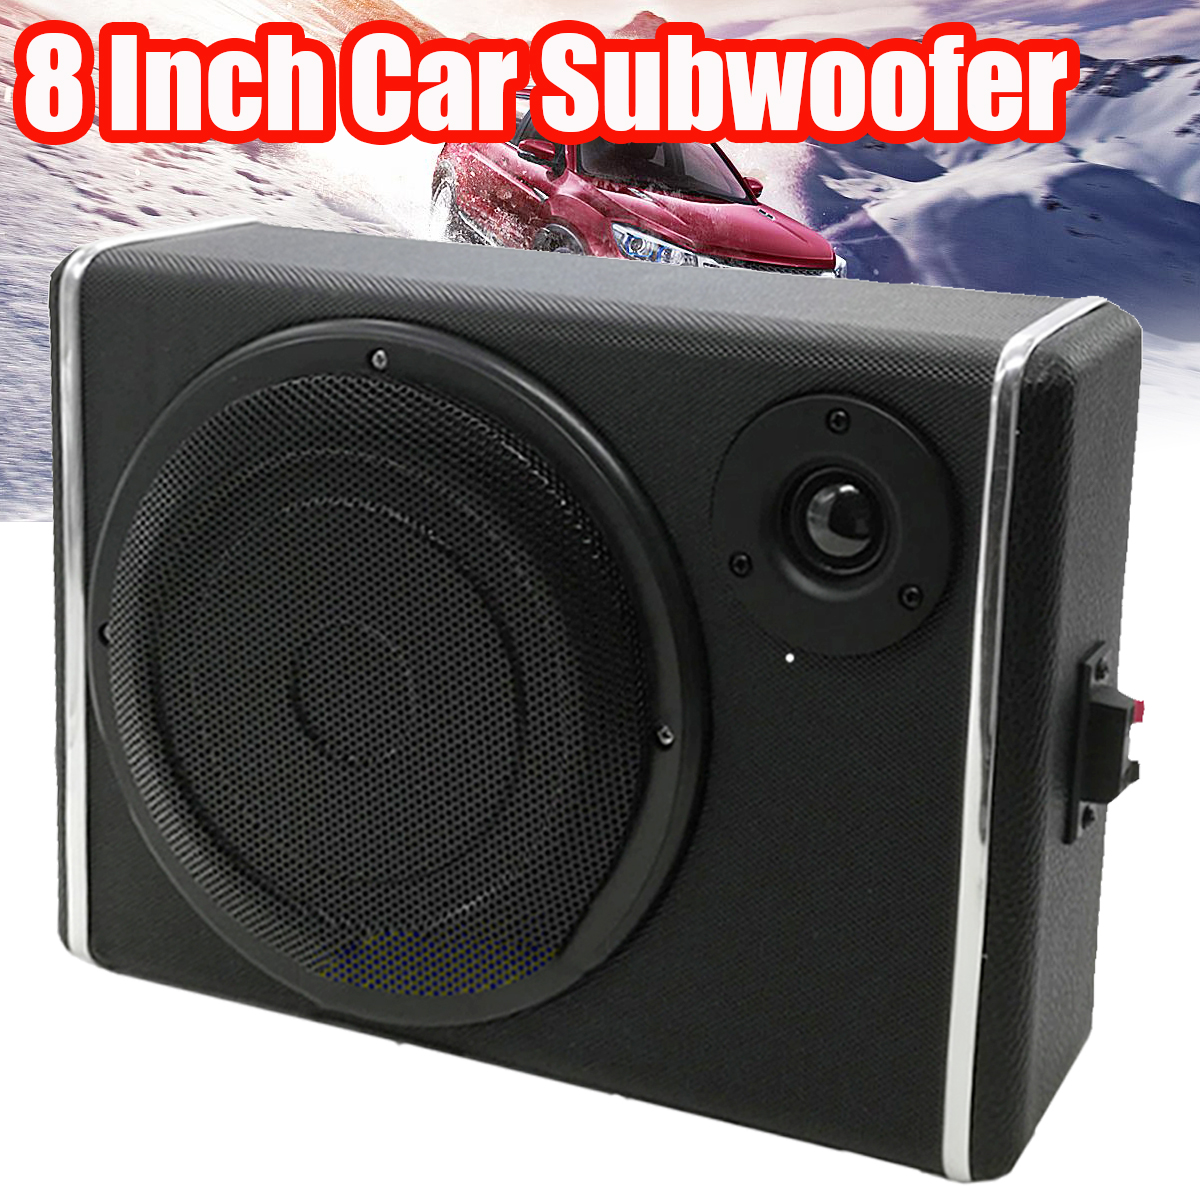 8 inch bluetooth car home subwoofer under seat sub 600w stereo subwoofer car audio speaker music system sound woofer 8 Inch Car Subwoofers Speaker Portable Auto Audio Loudspeaker Horn Car Stereo System Sound Subwoofer Speaker Car Sound